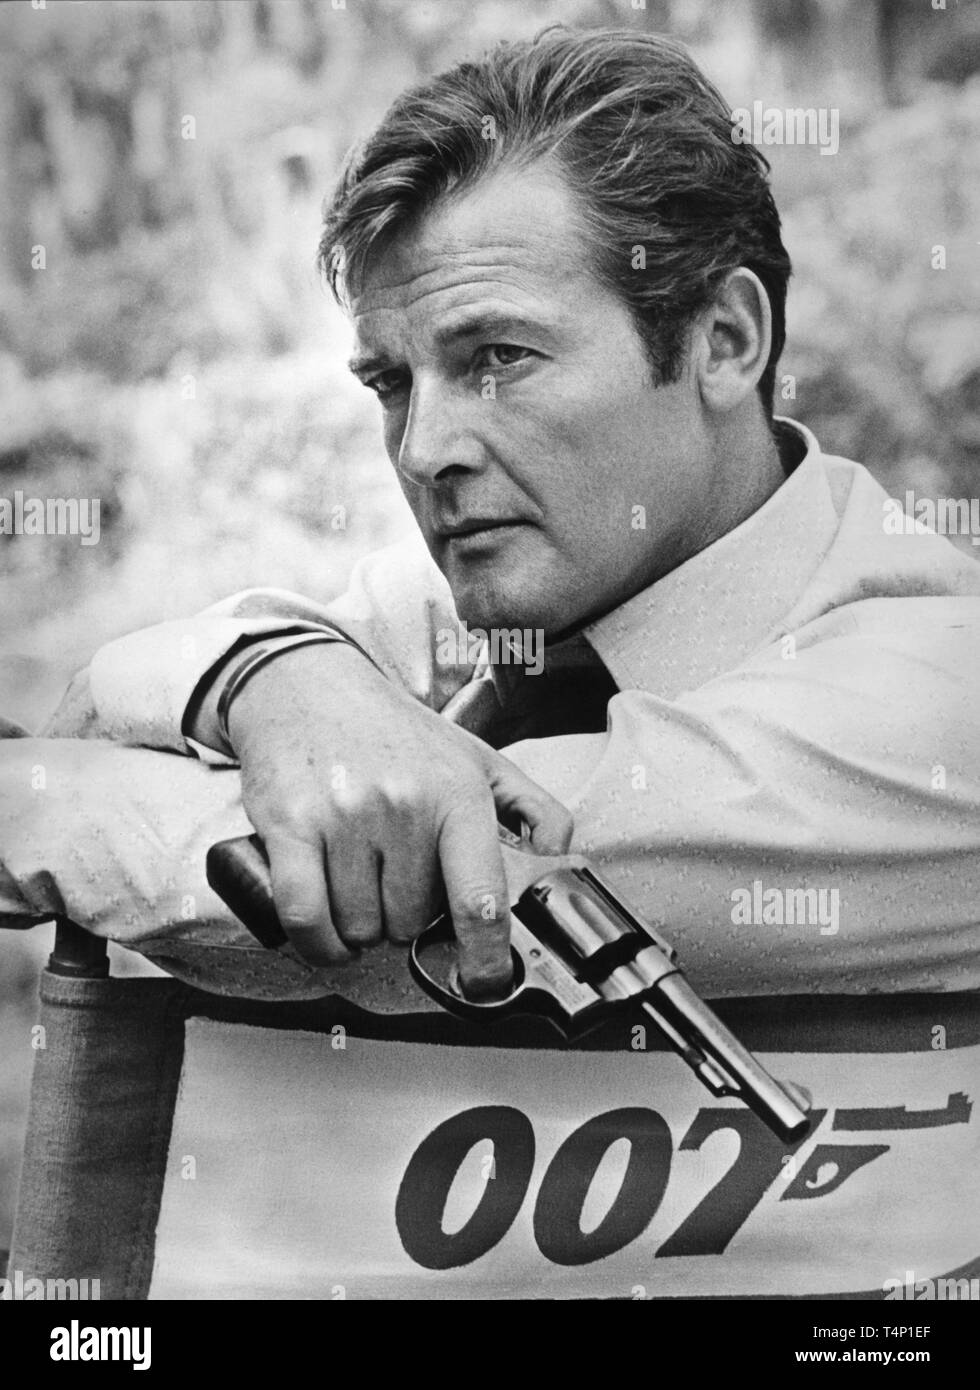 Roger moore as james bond 007 live and let die 1973 on set candid during location